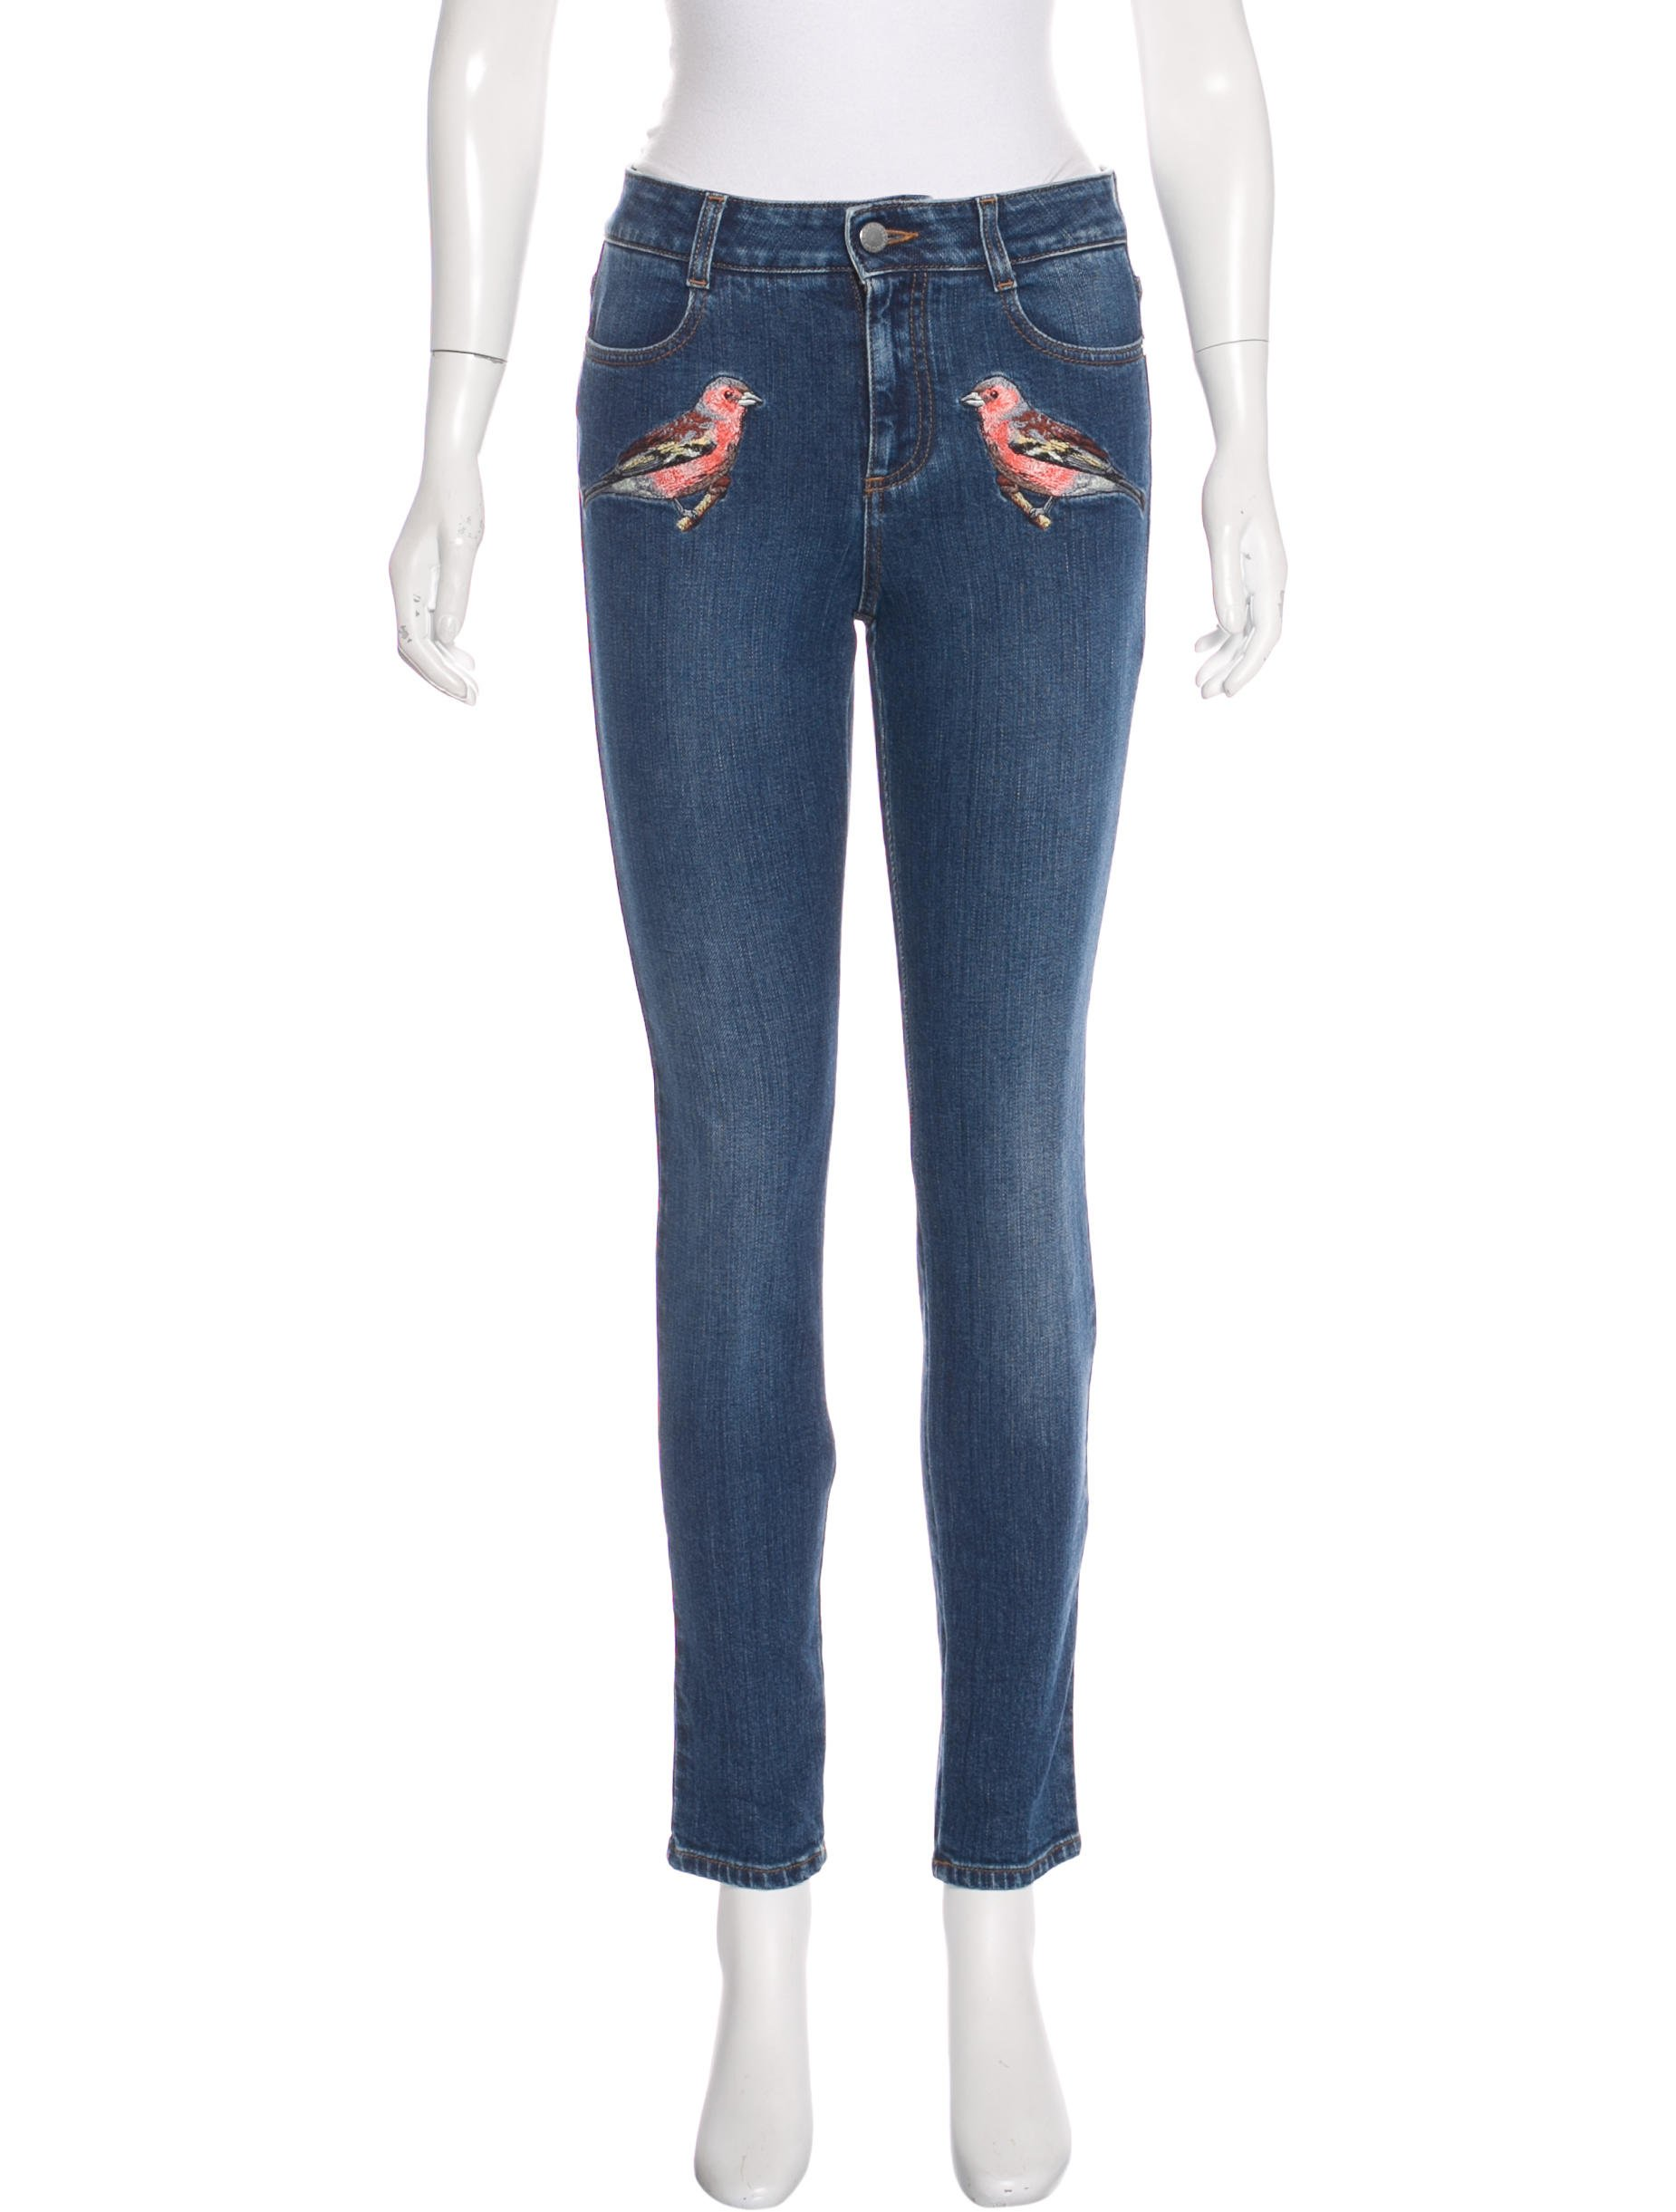 STELLA MCCARTNEY 2016 MID-RISE EMBROIDERED JEANS W/ TAGS; Size: US 26; $245.00